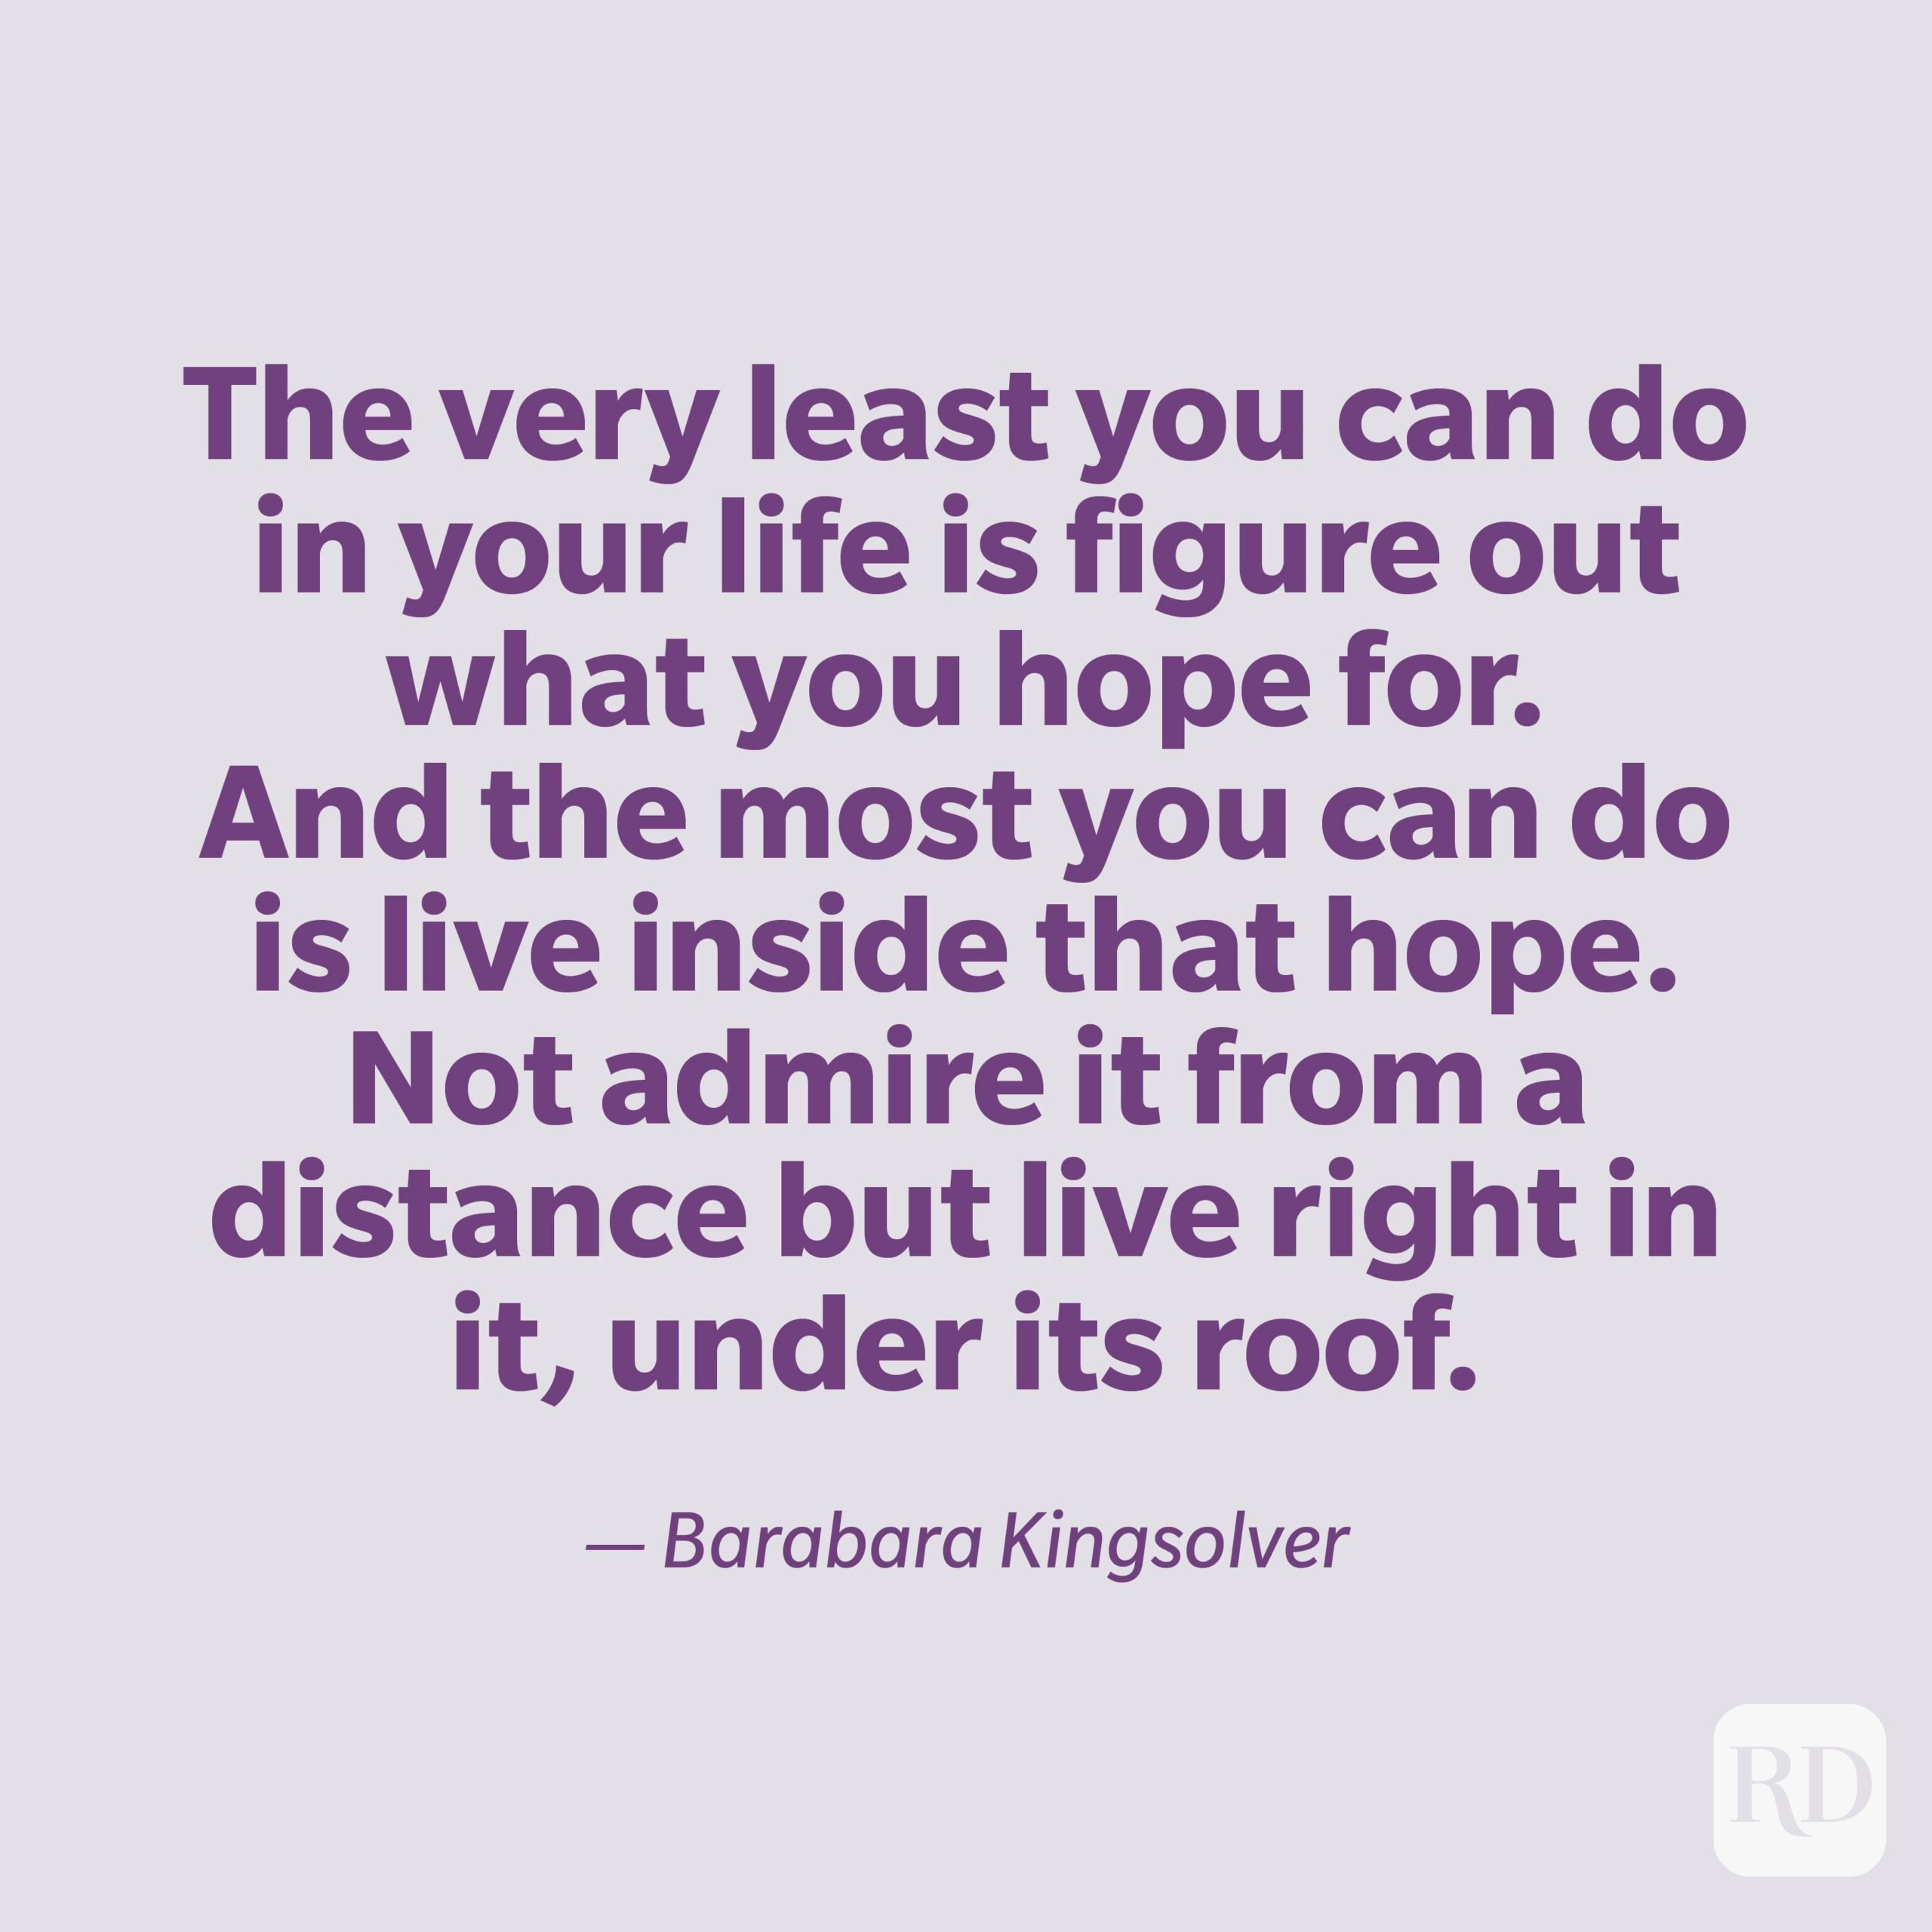 """""""The very least you can do in your life is figure out what you hope for. And the most you can do is live inside that hope. Not admire it from a distance but live right in it, under its roof."""" —Barbara Kingsolver."""